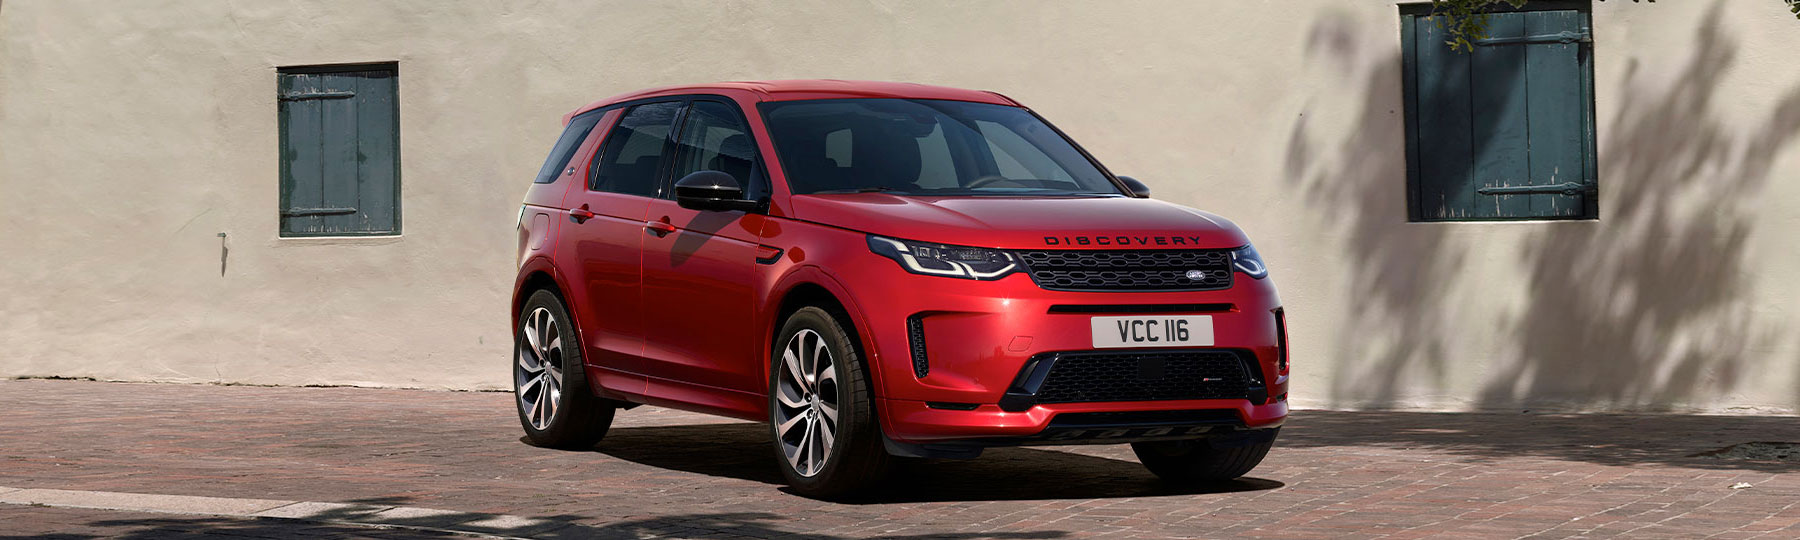 New Land Rover Discovery Sport Business Offer